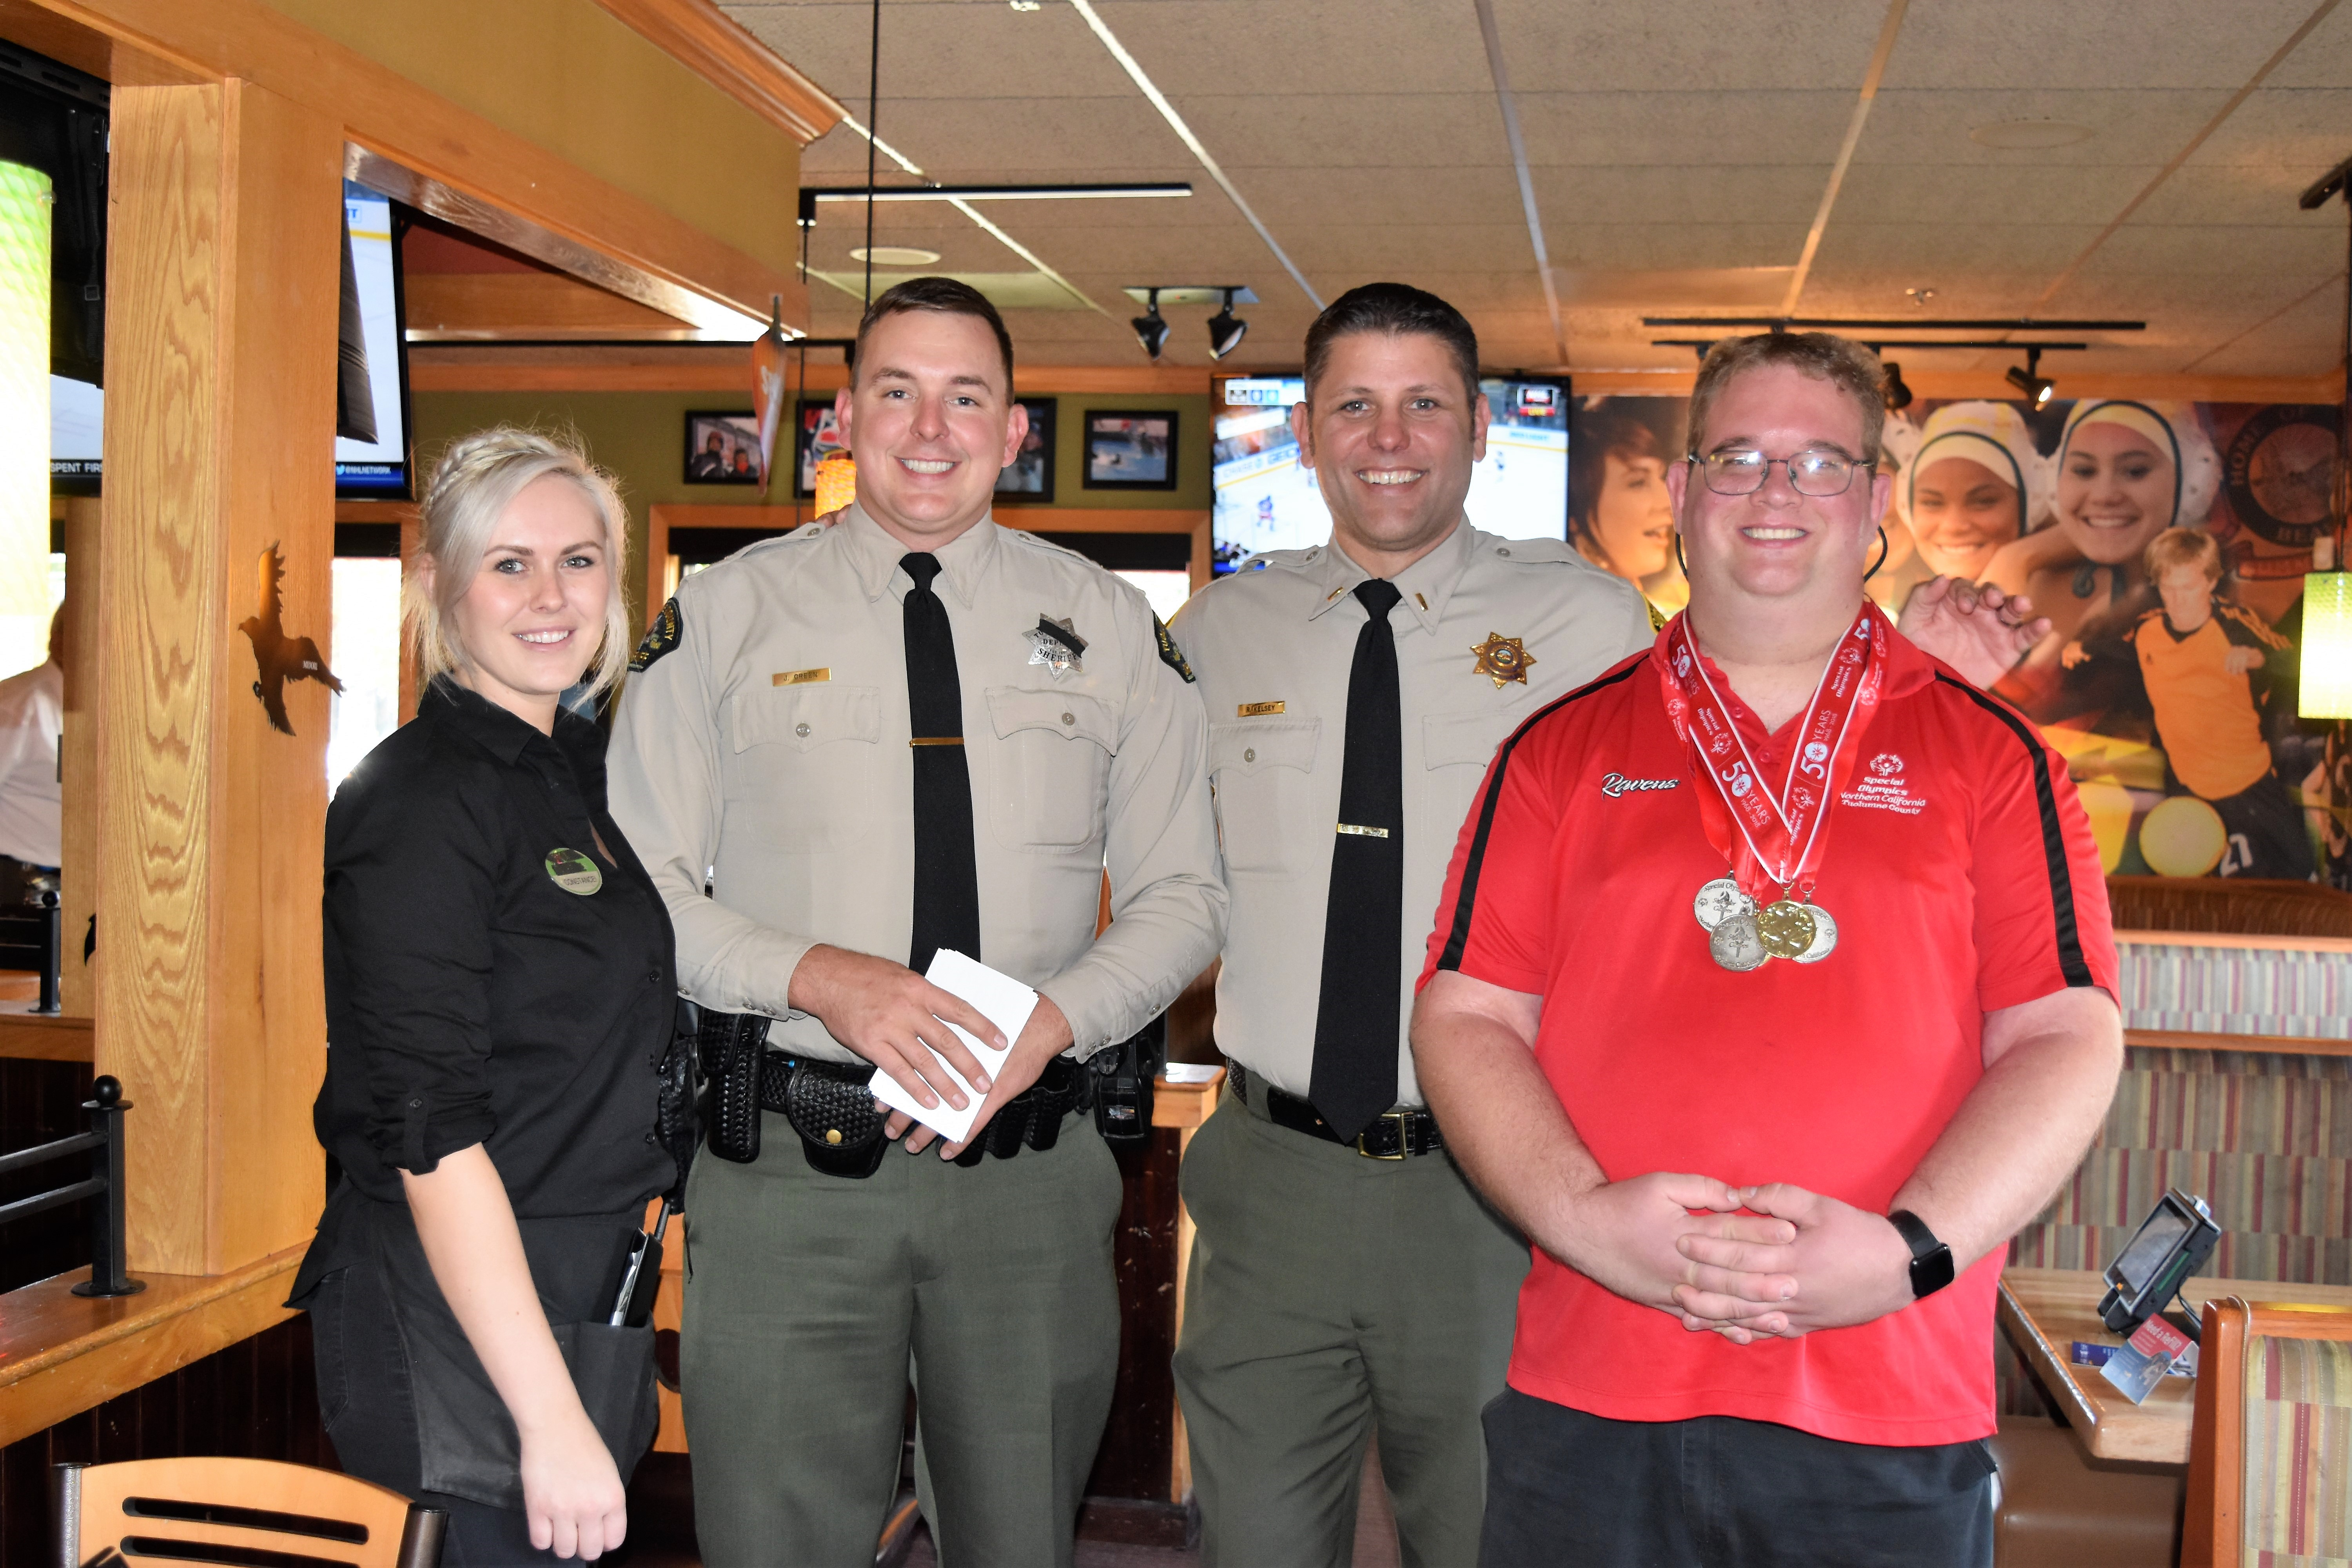 Two men in uniform are flanked by a restaurant server and a man wearing Special Olympics medals.